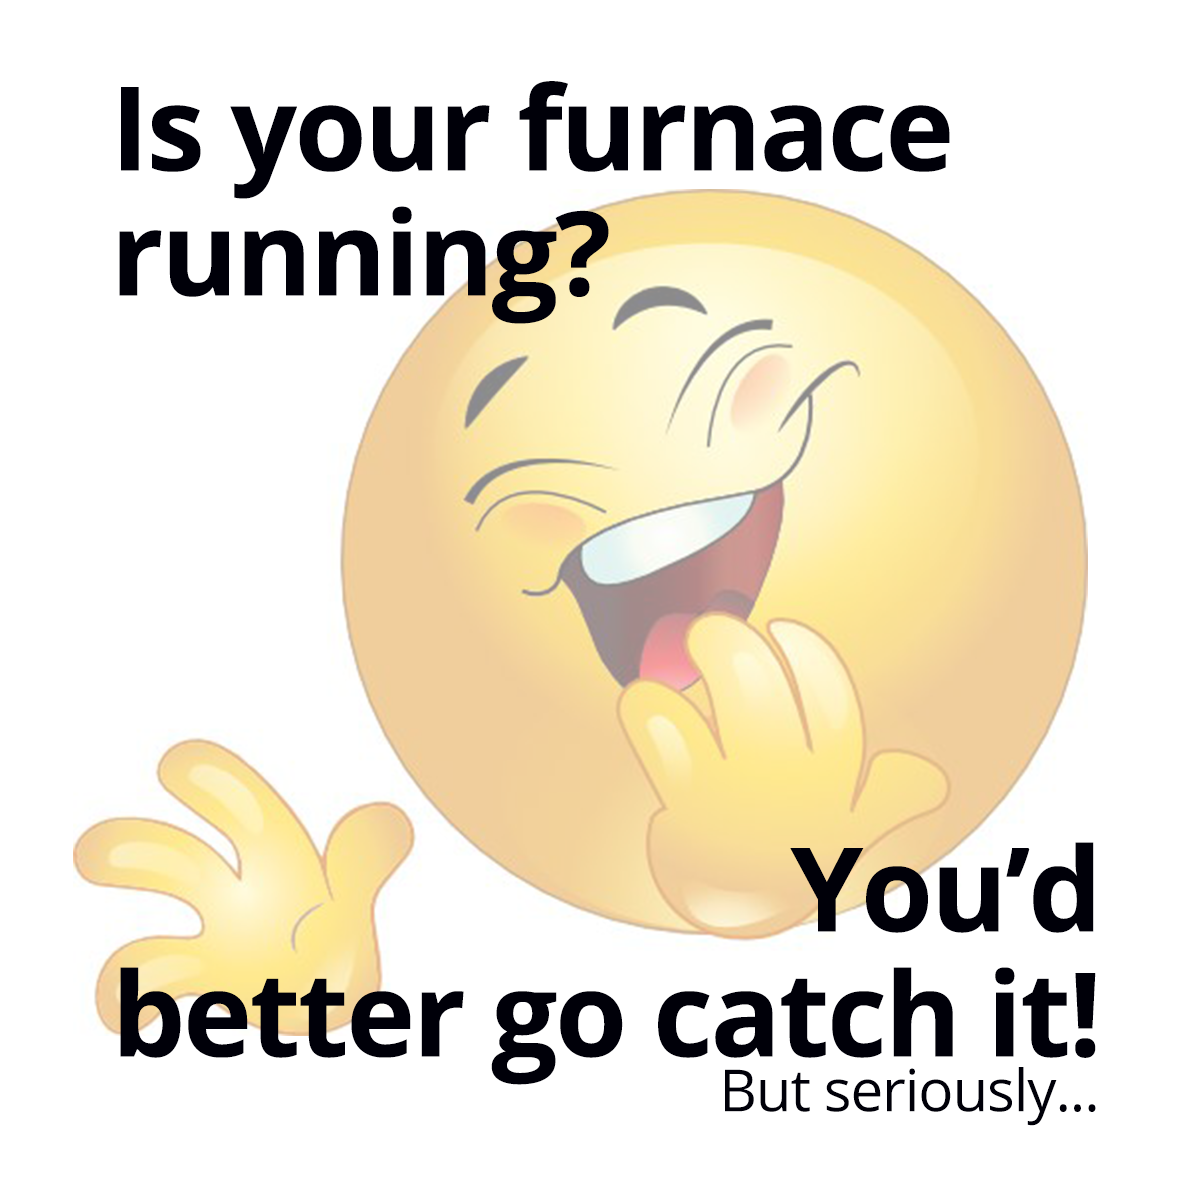 If Your Furnace Or Hvac System Is 10 Years Old It Is Running Up